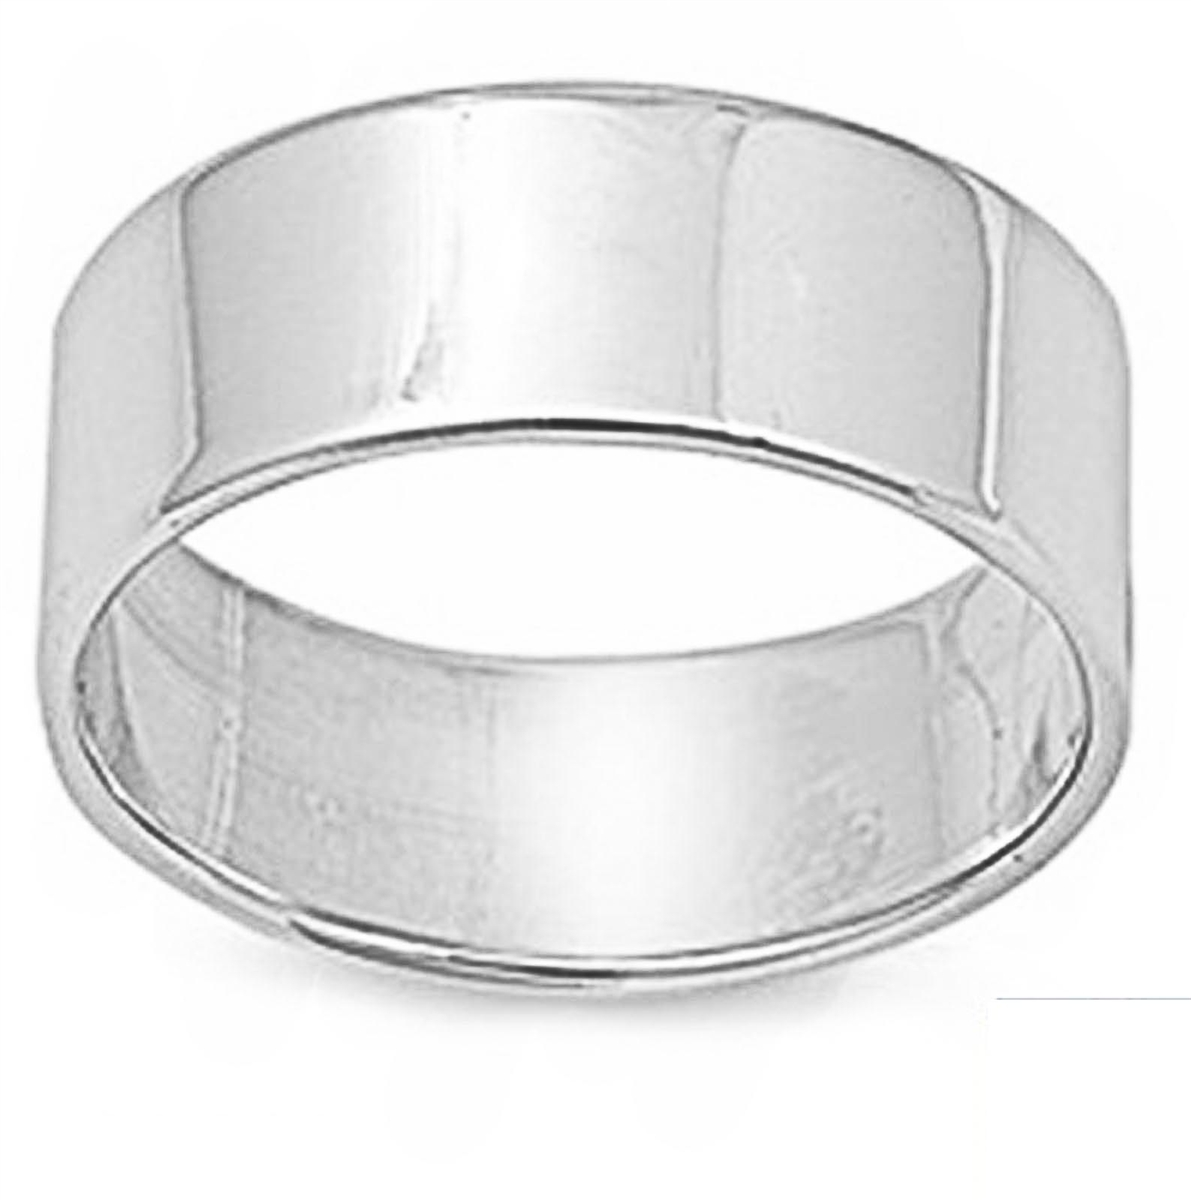 Flat Plain Solid Wedding Band 8 MM .925 Sterling Silver Ring Sizes 5-14